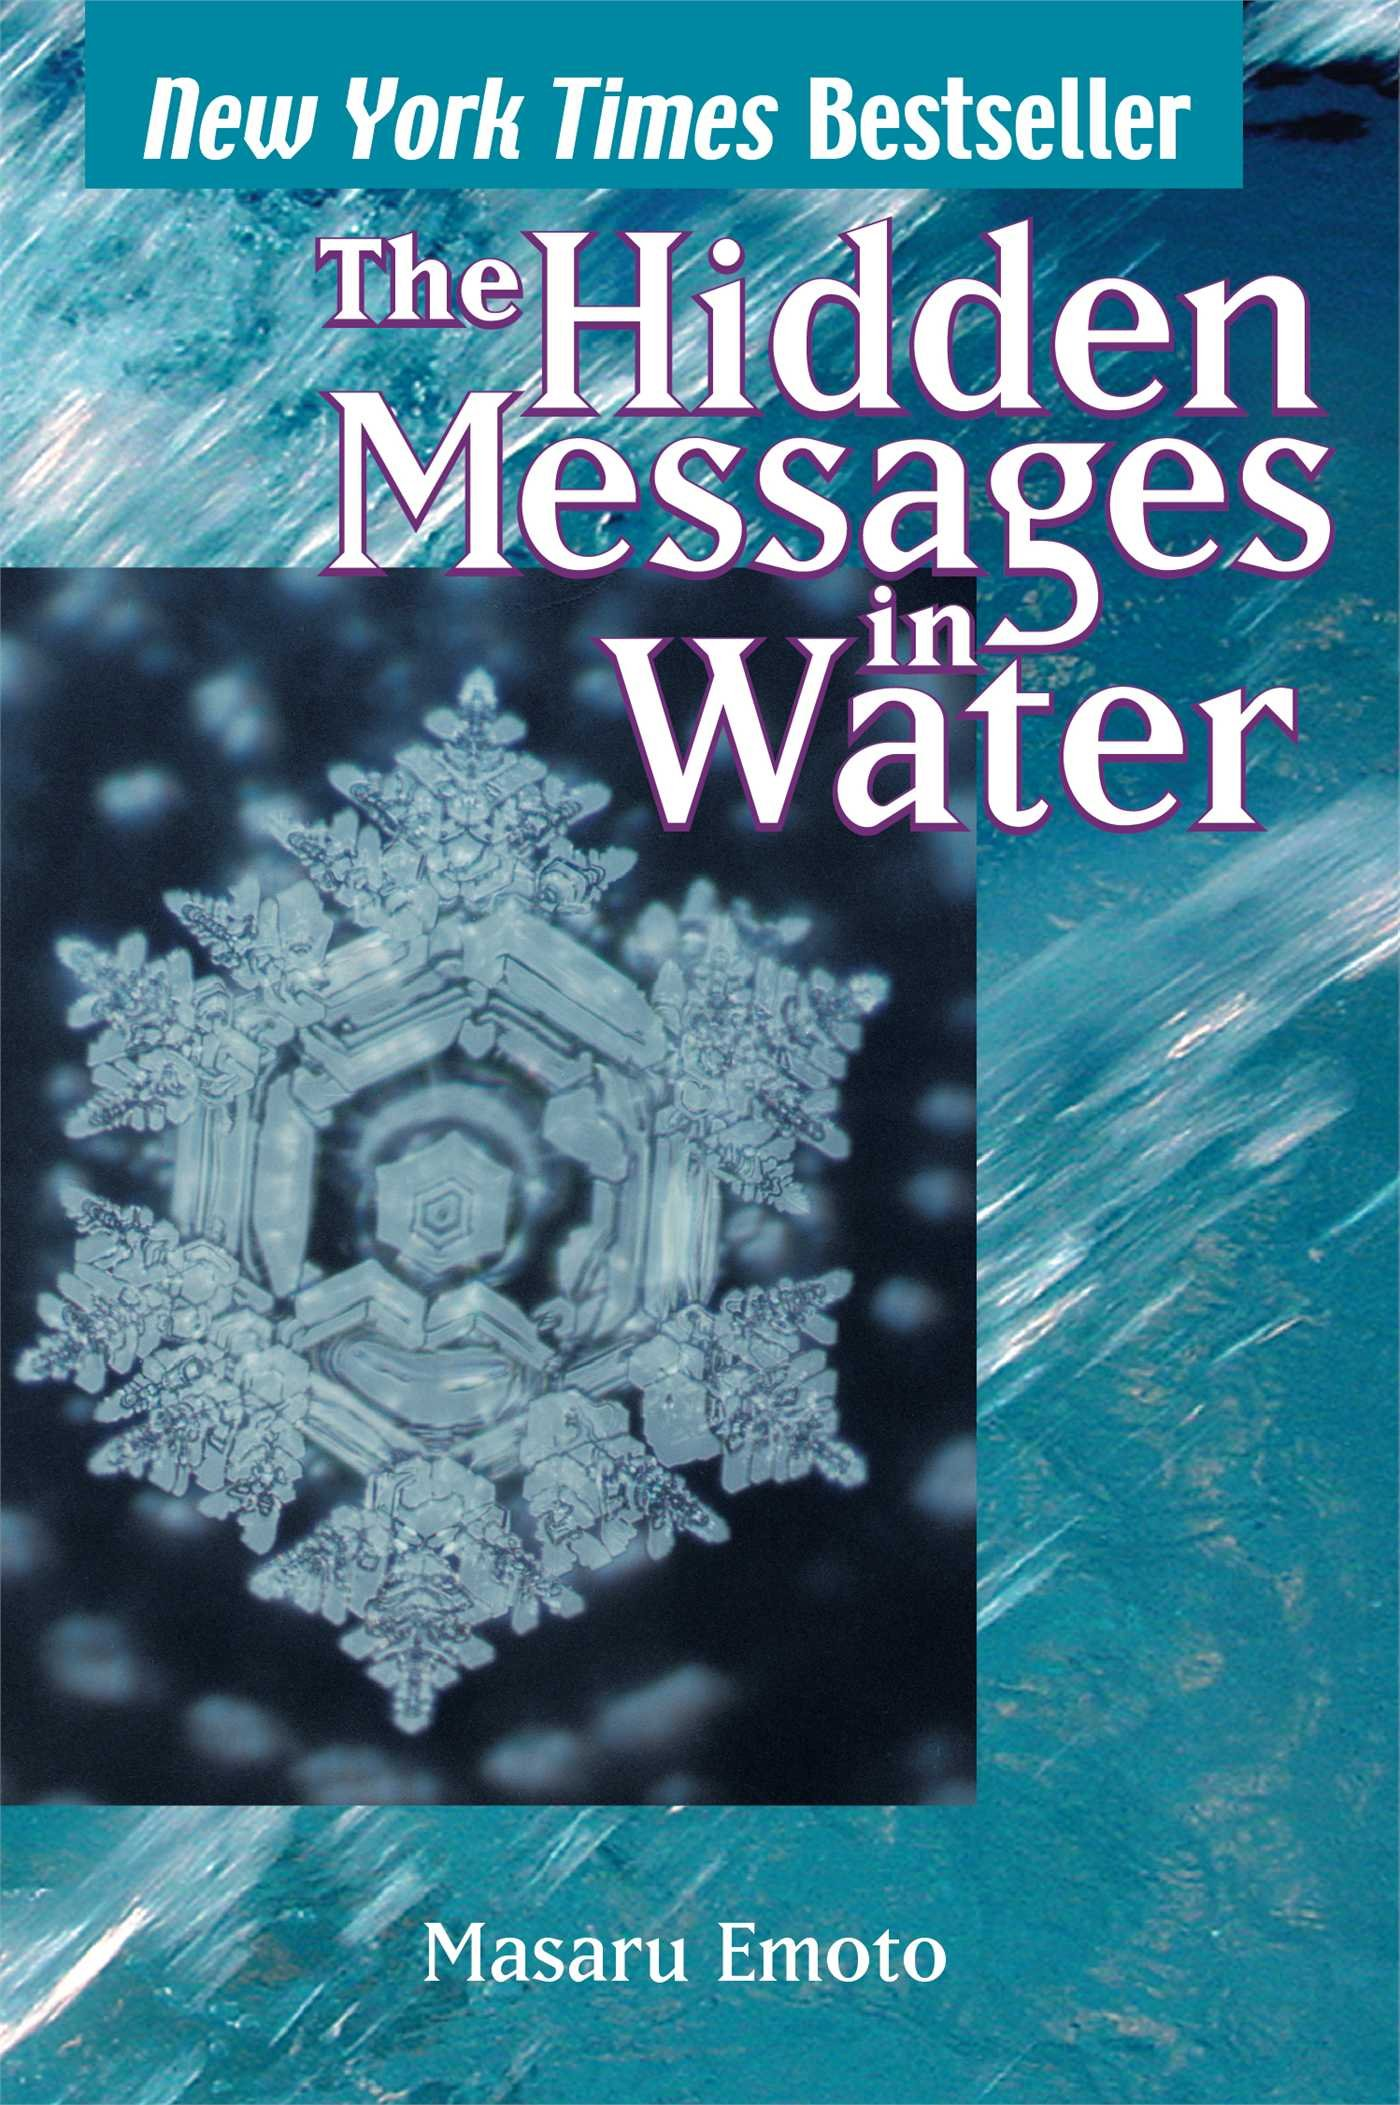 The Hidden Messages in Water: Masaru Emoto: 9780743289801: Amazon ...